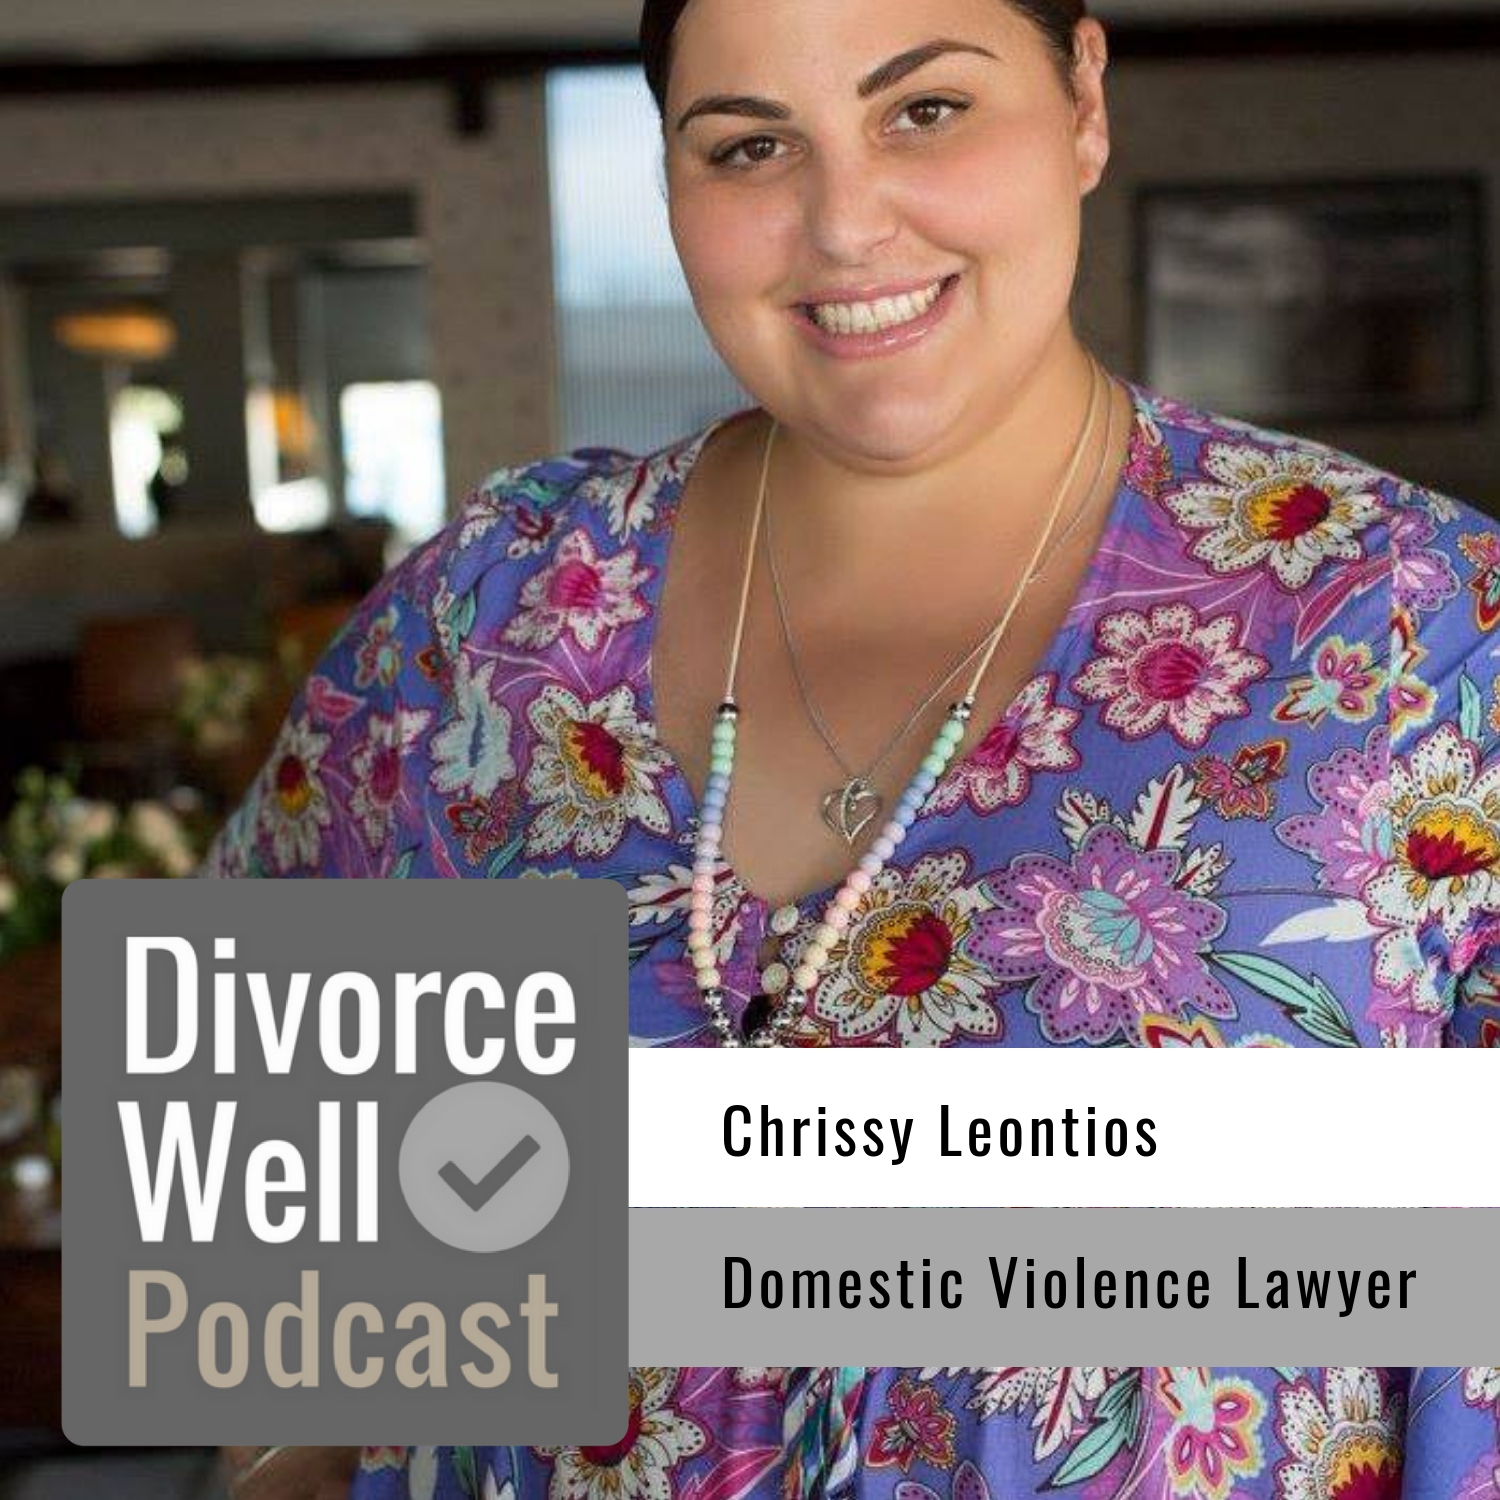 The Divorce Well Podcast - 27 - Domestic Violence Family Lawyer, Chrissy Leontios